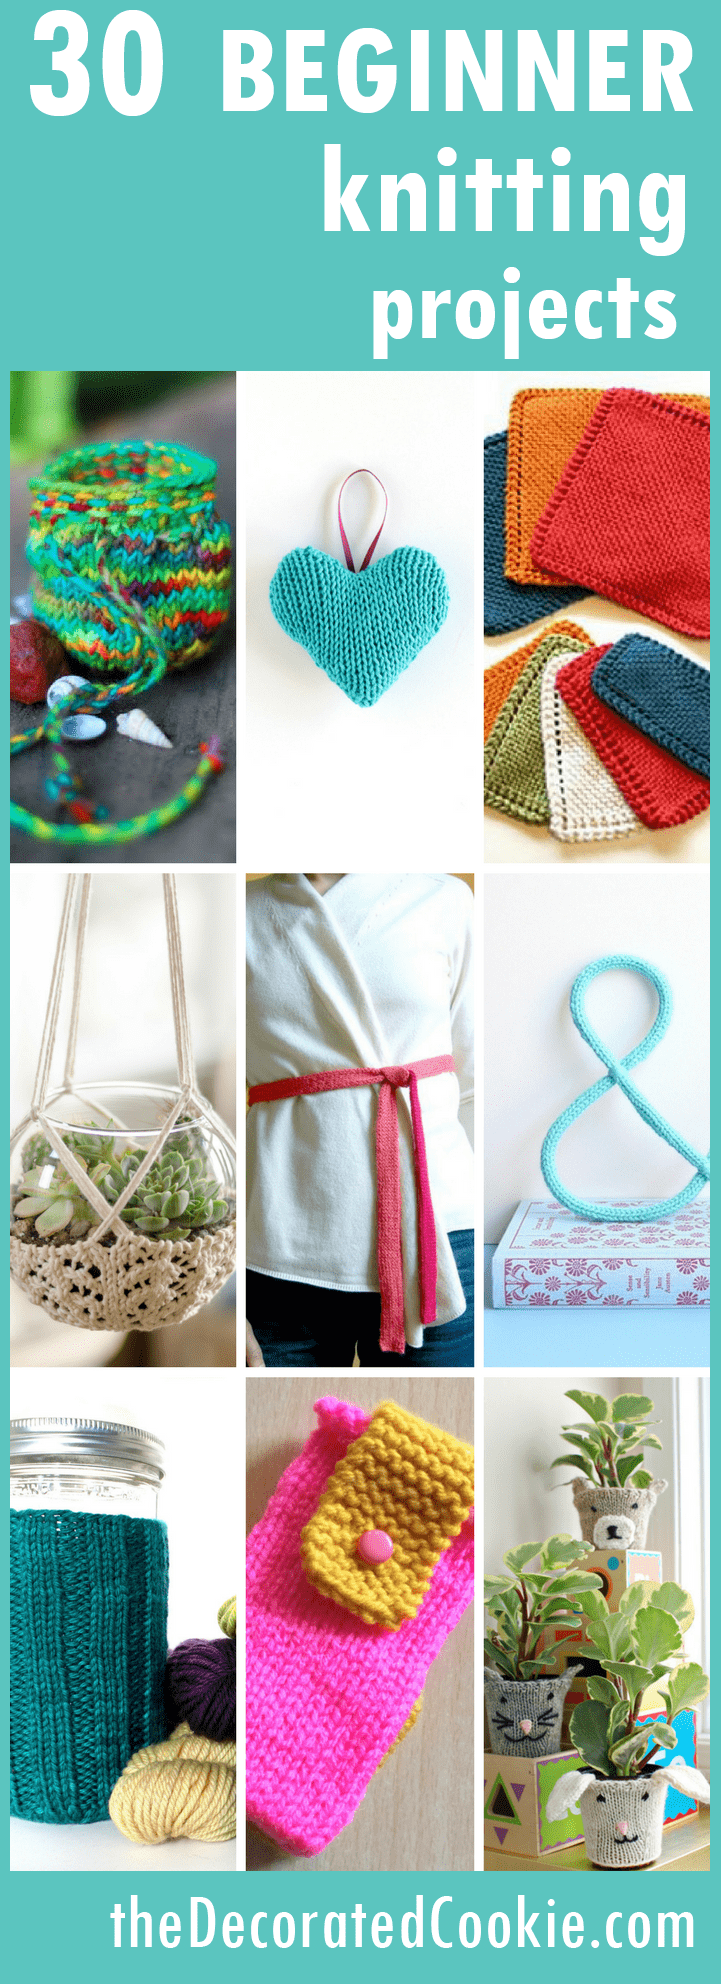 20 easy knitting projects beyond blankets and scarves -- easy knitting for beginners